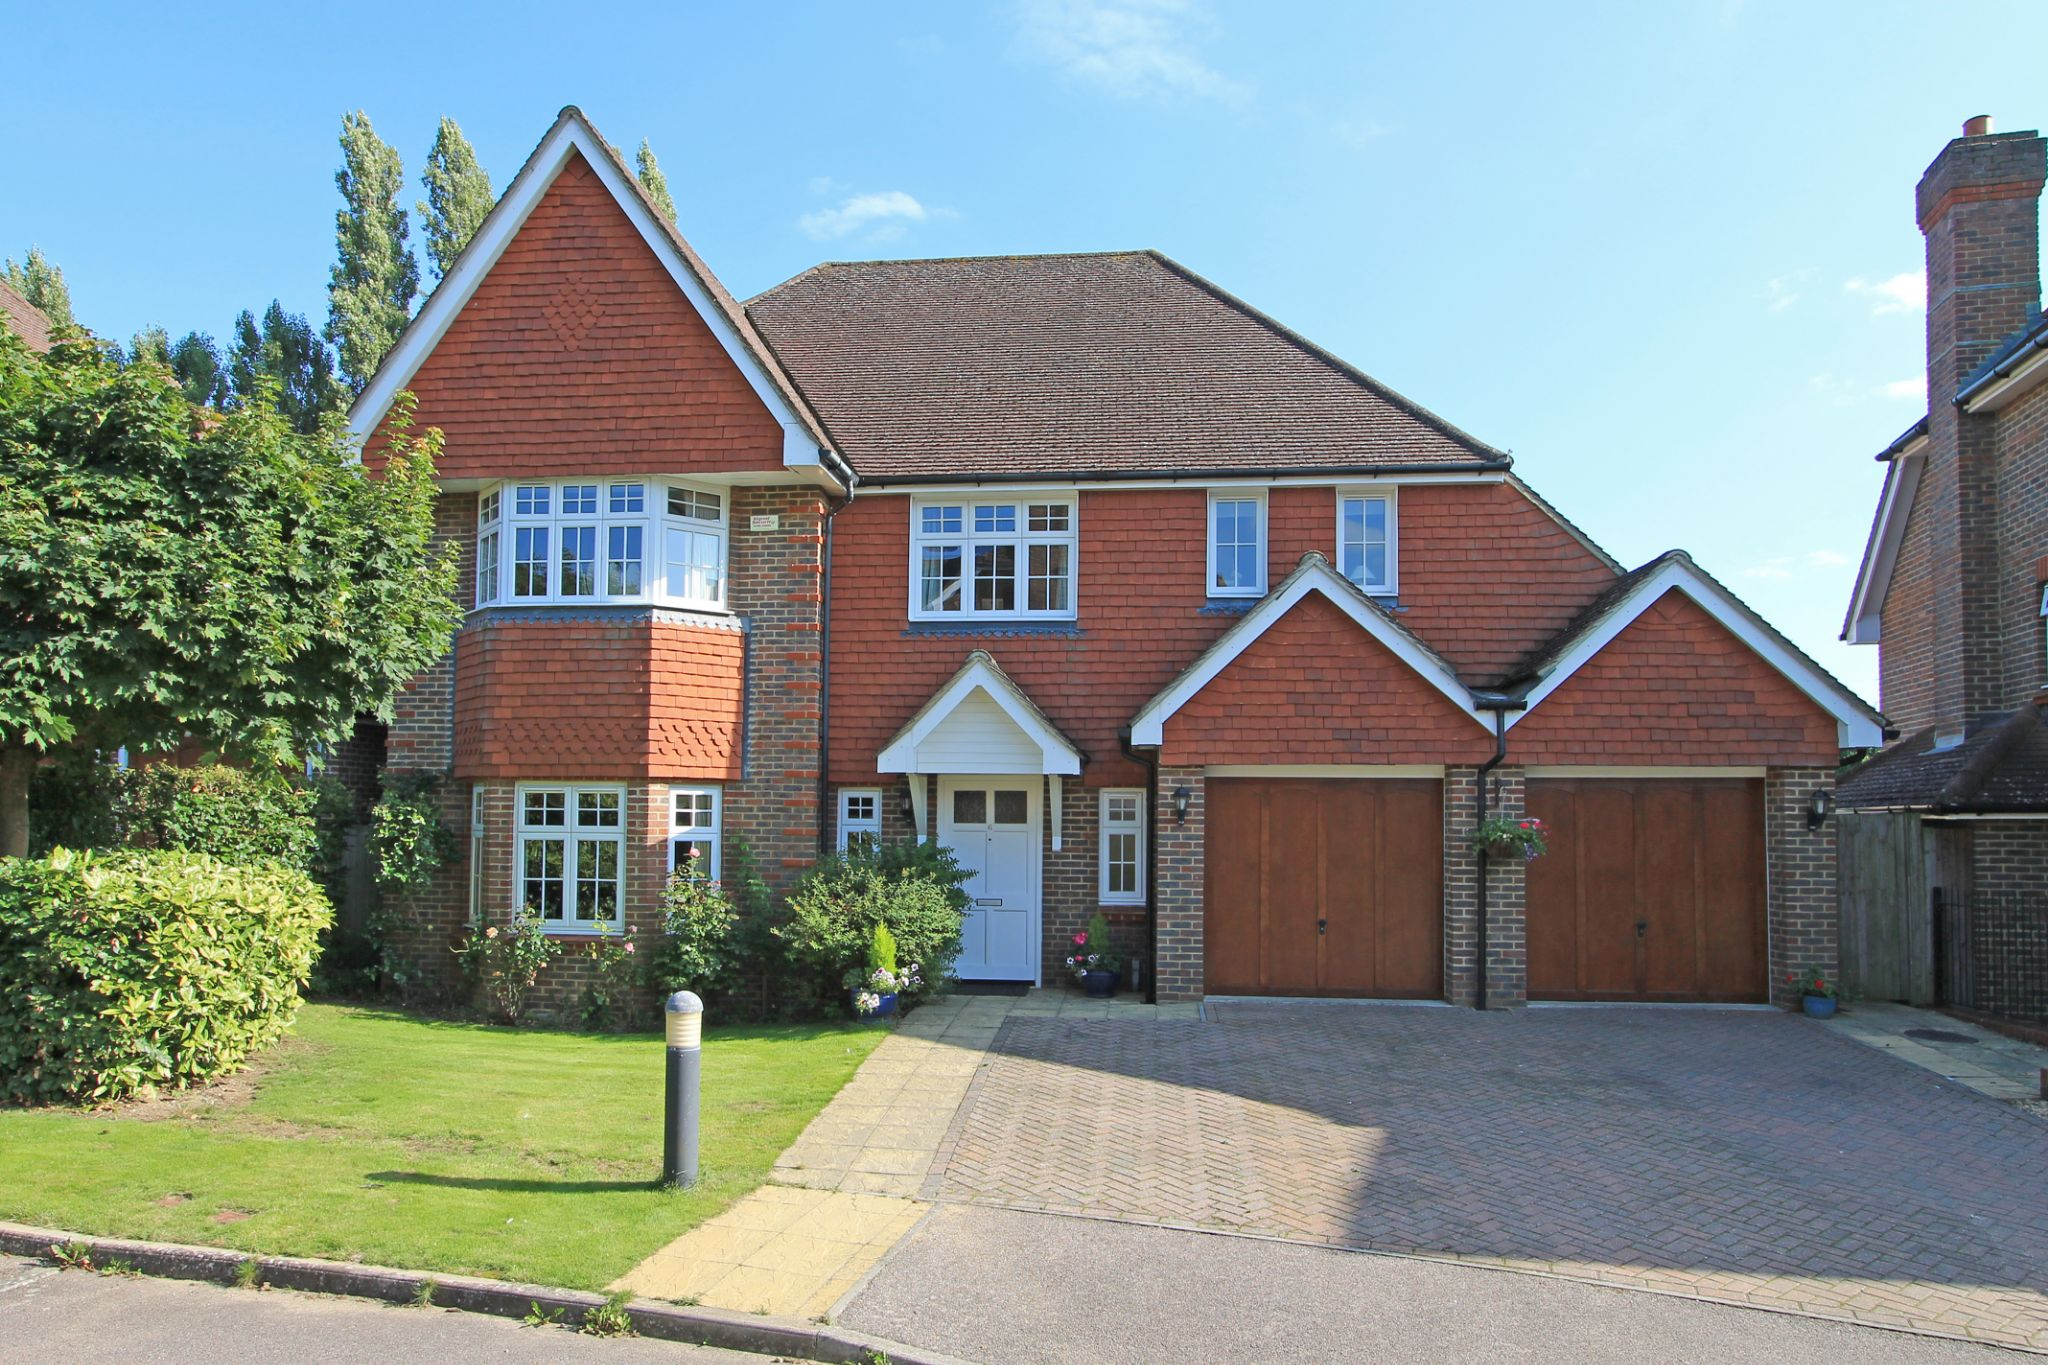 5 bedroom detached house For Sale in Sevenoaks - Photograph 1